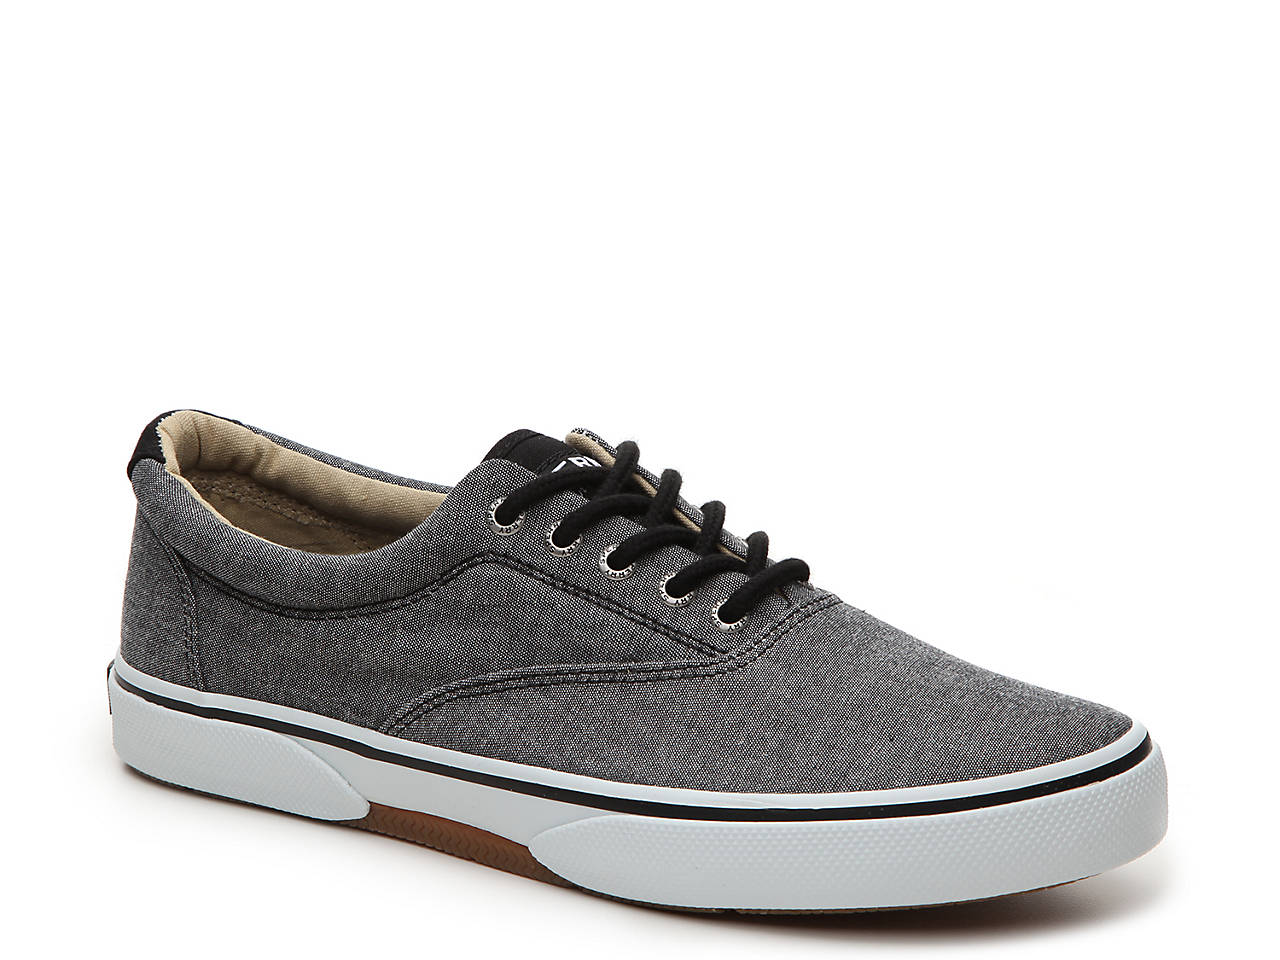 Sperry Top Sider Sneakers buy cheap footlocker cheap 100% guaranteed xosWB0wgzc